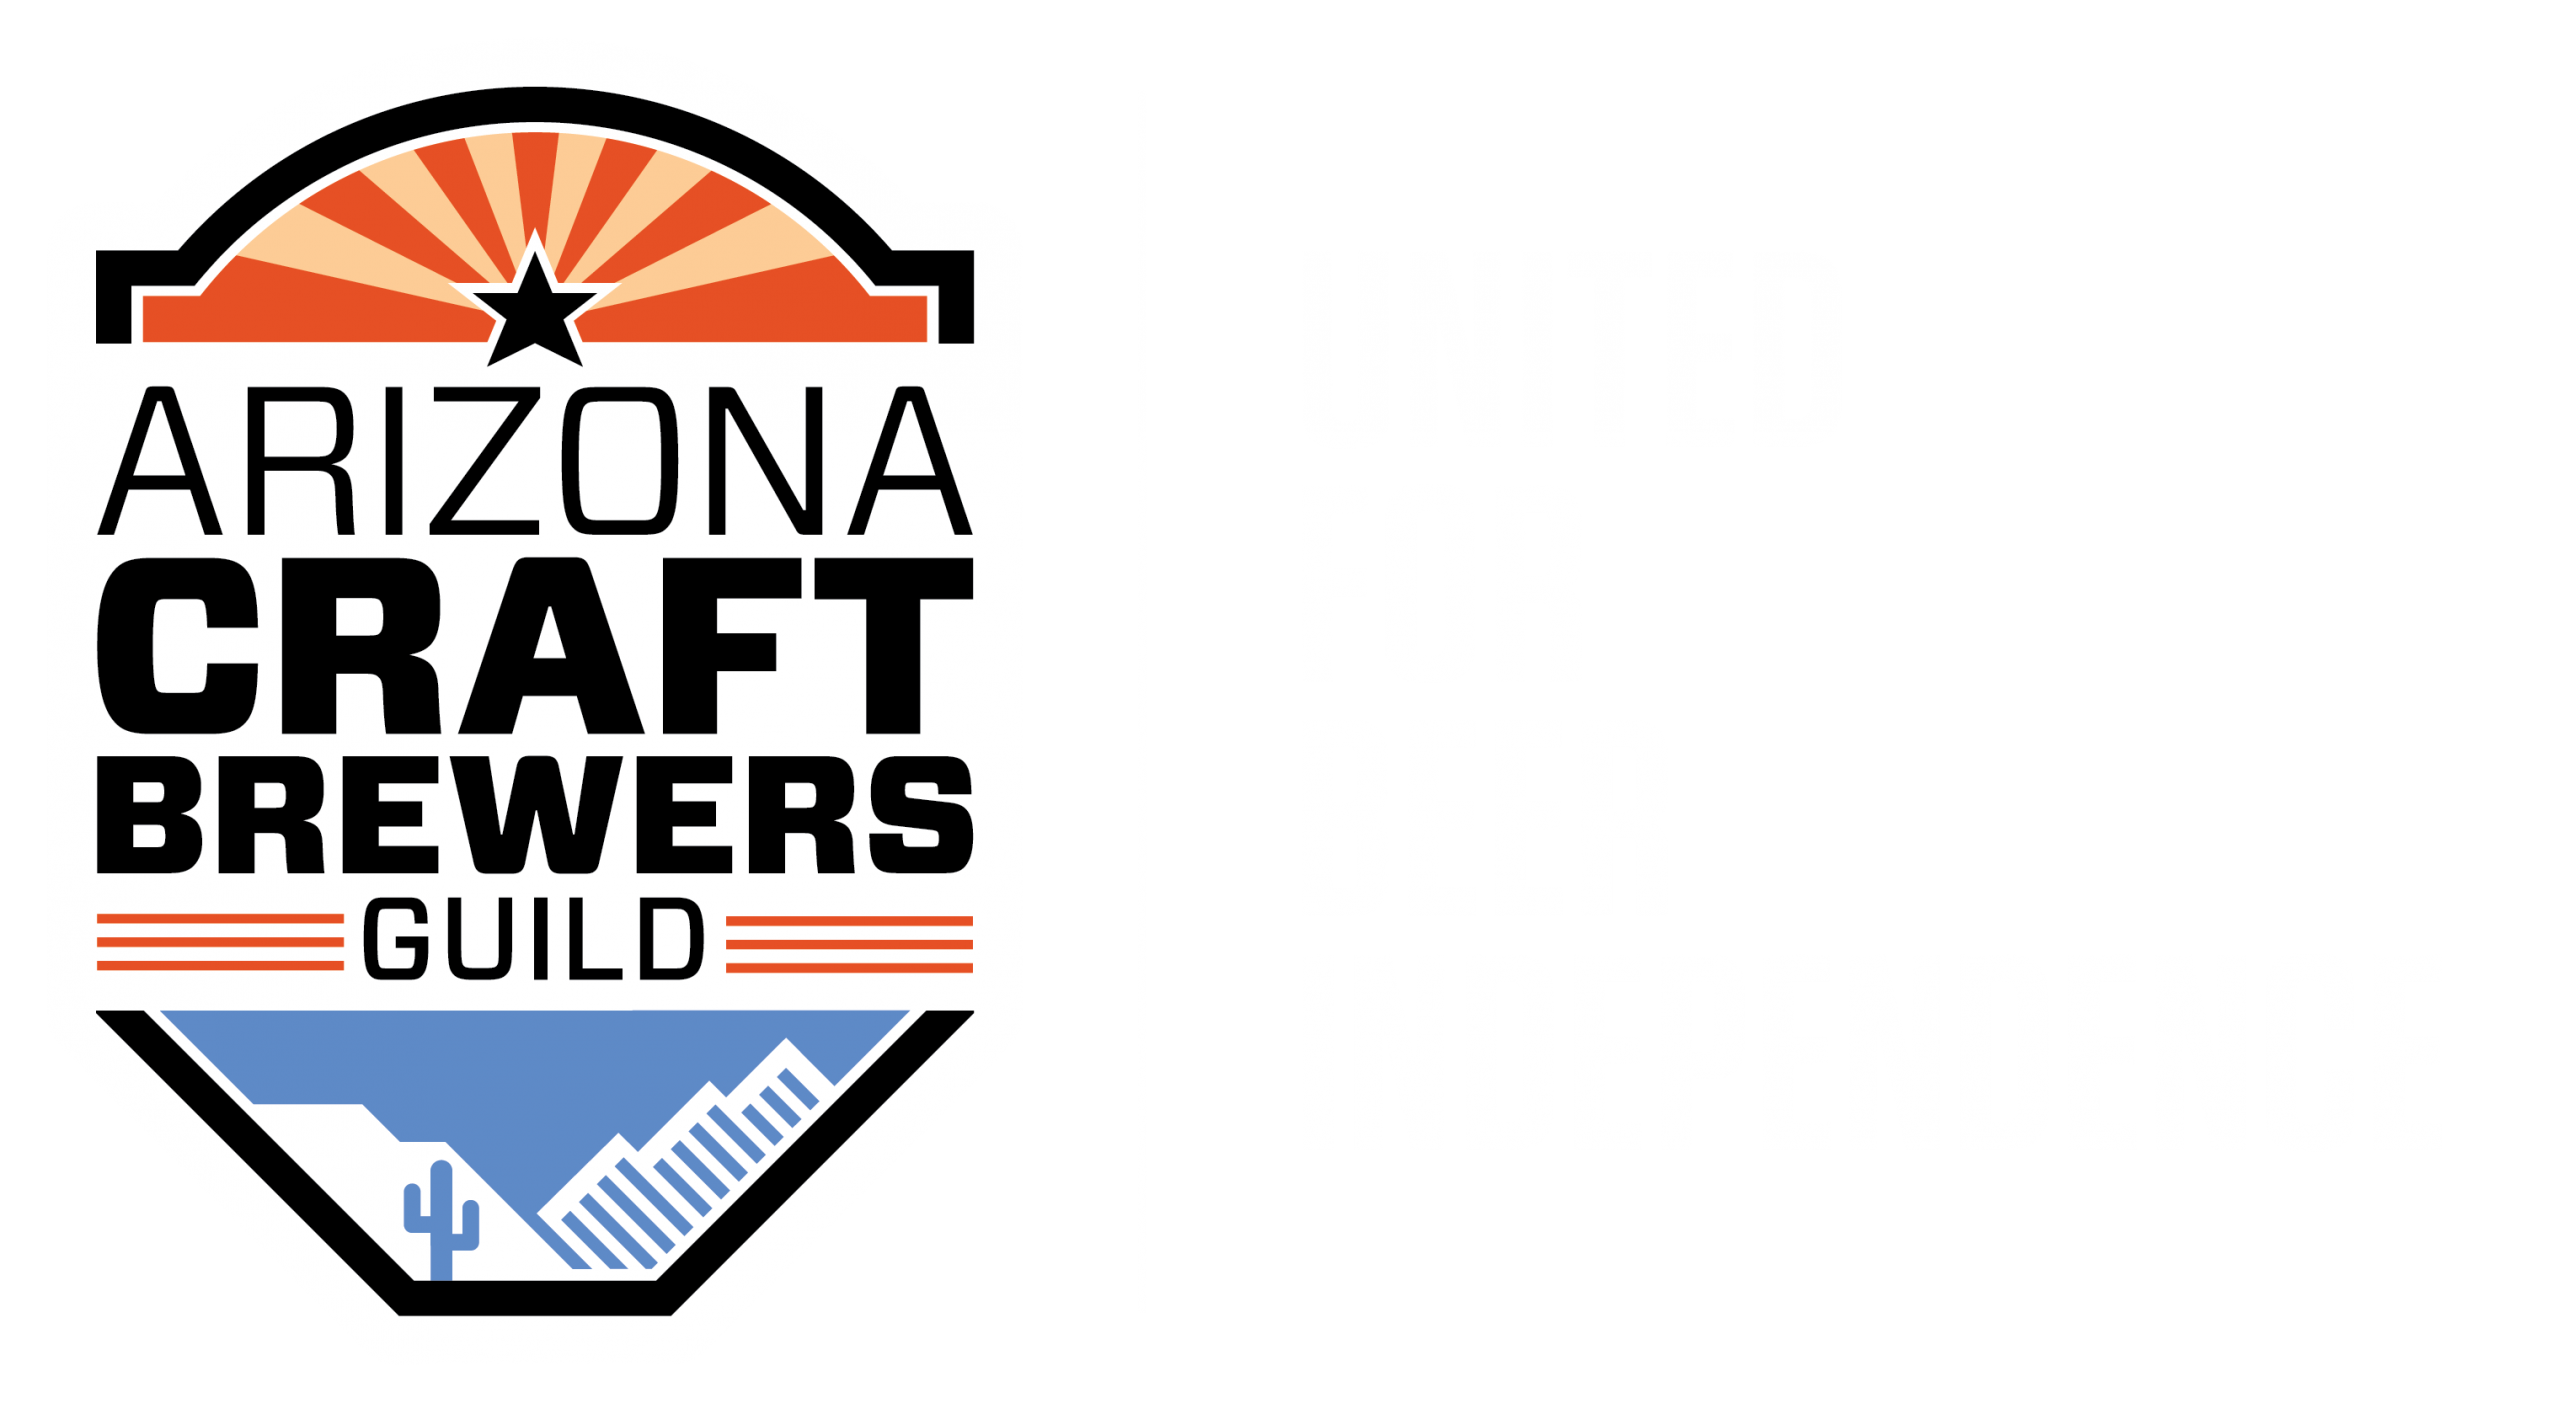 Arizona BBQ Co. | Arizona Craft Brewers Guild